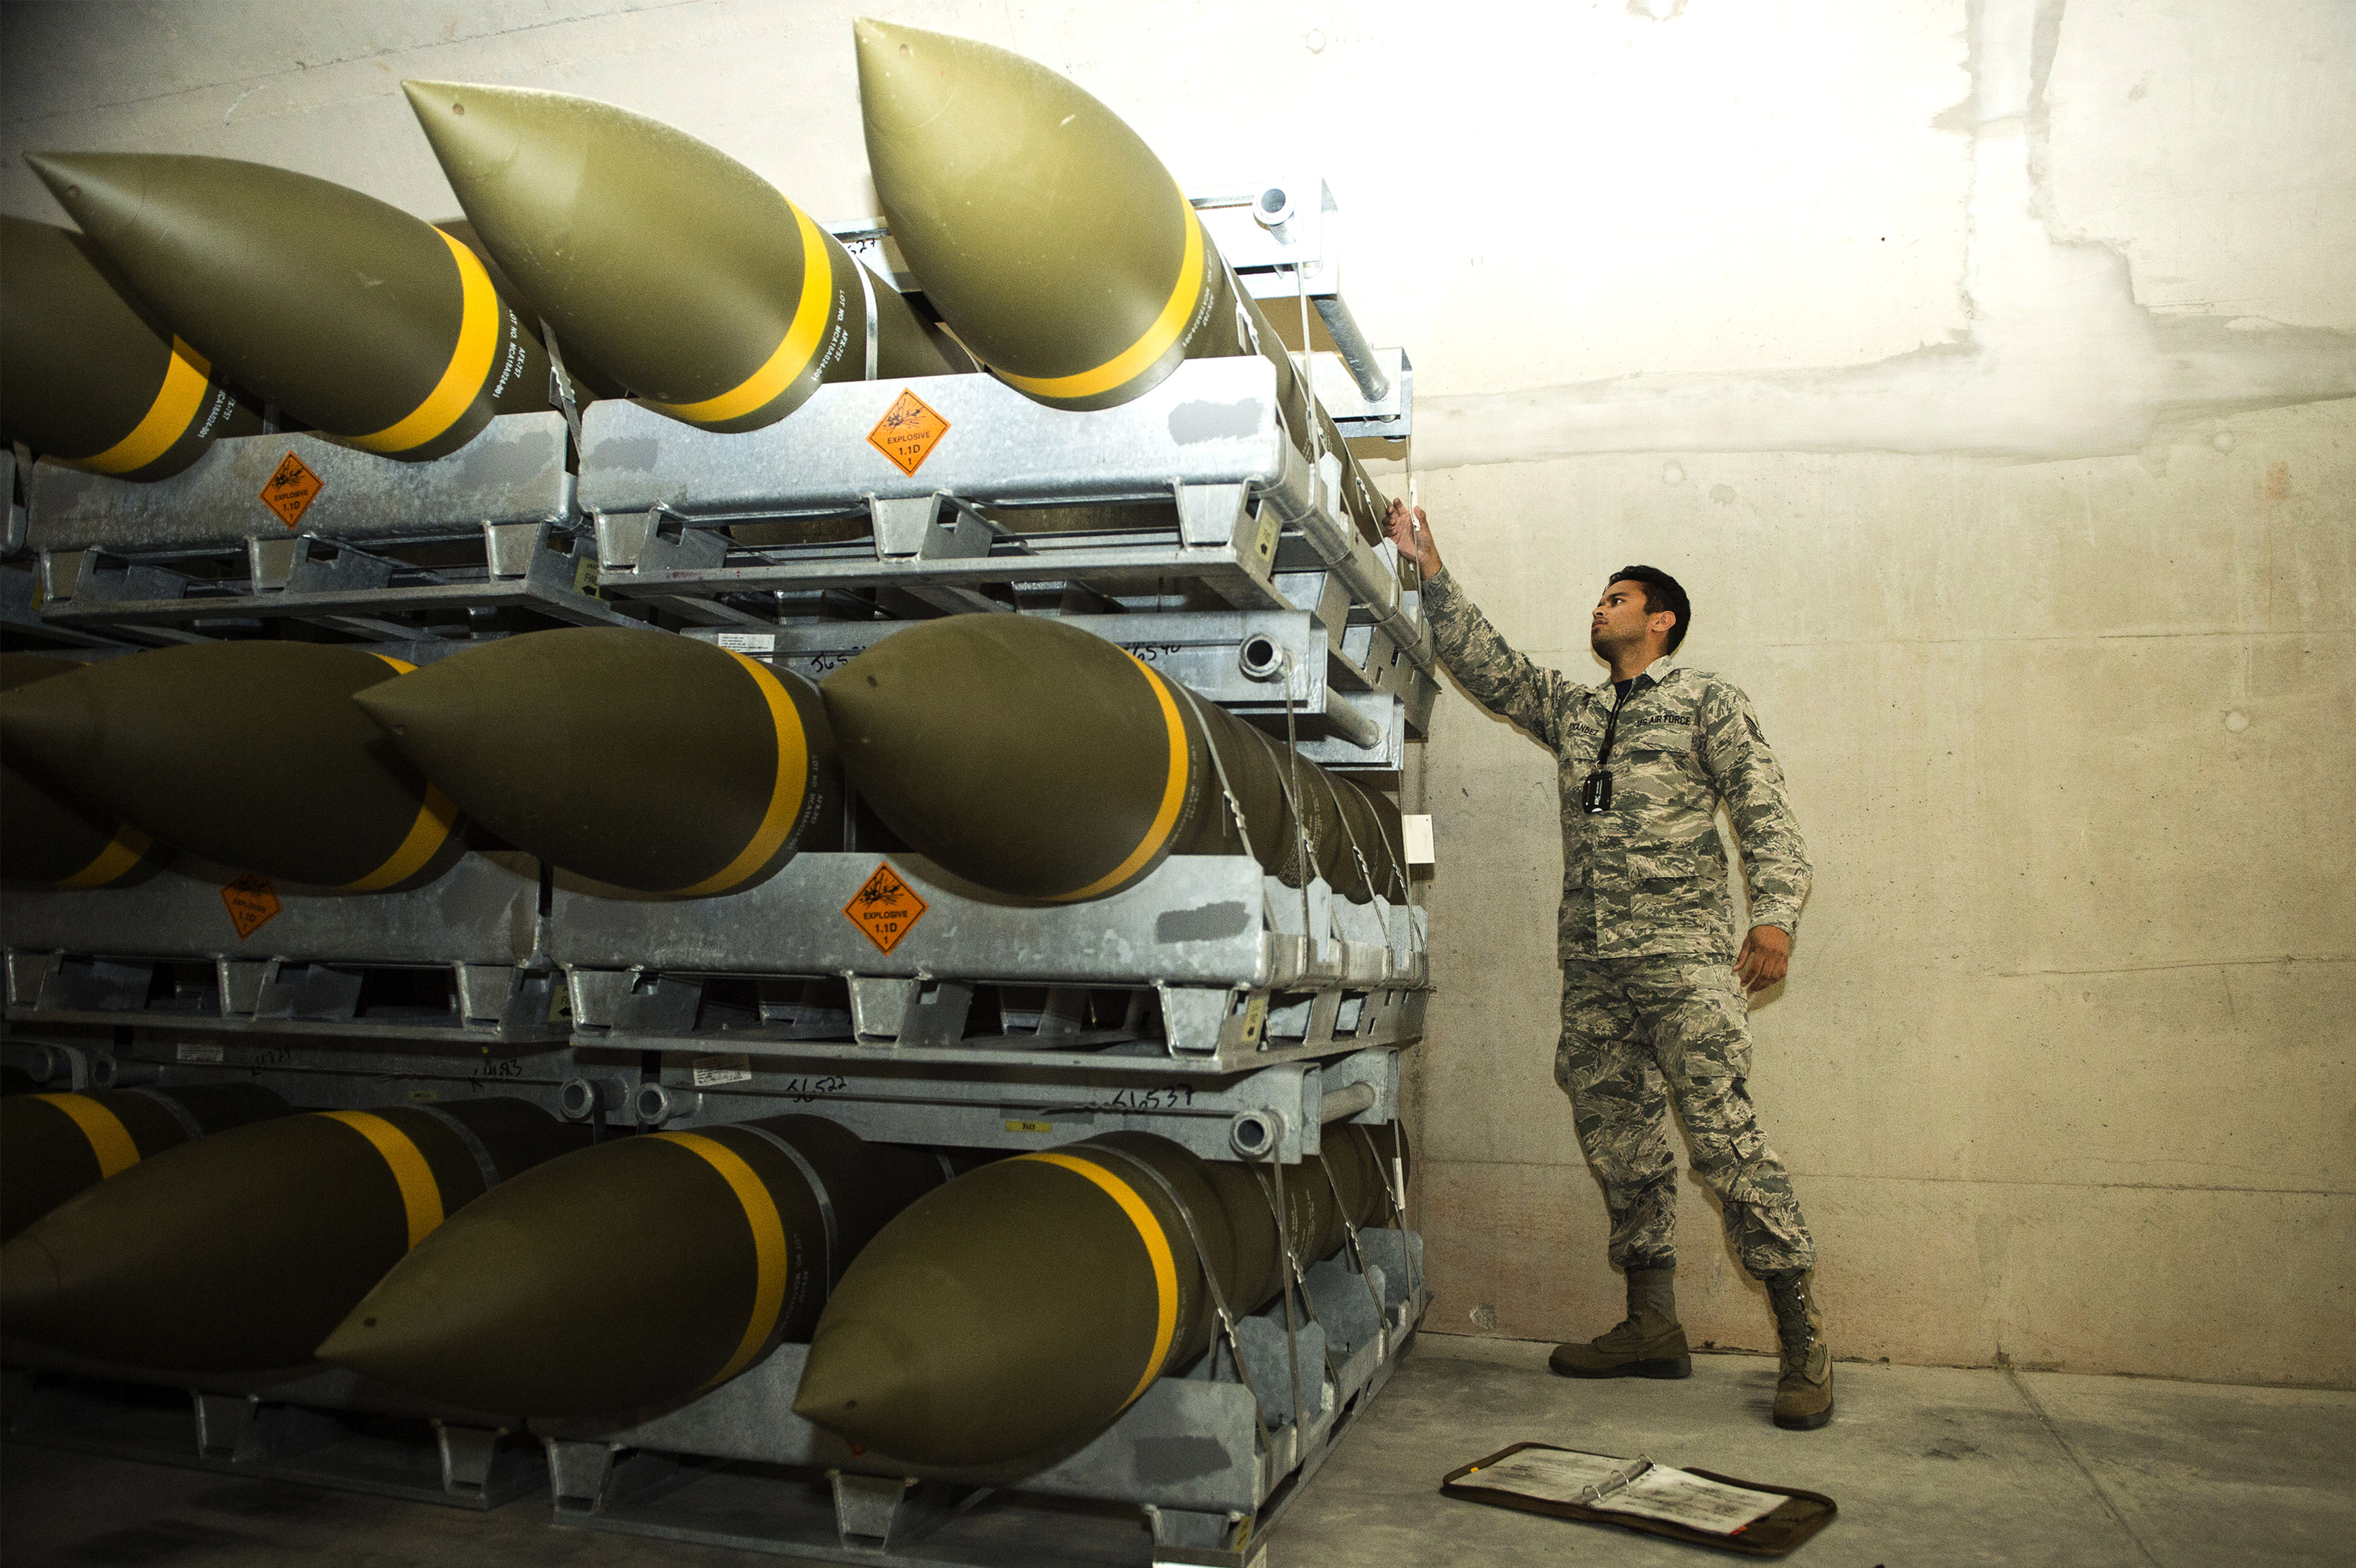 Afx Army Cadets armed and ready: ramstein receives largest ammo shipment in